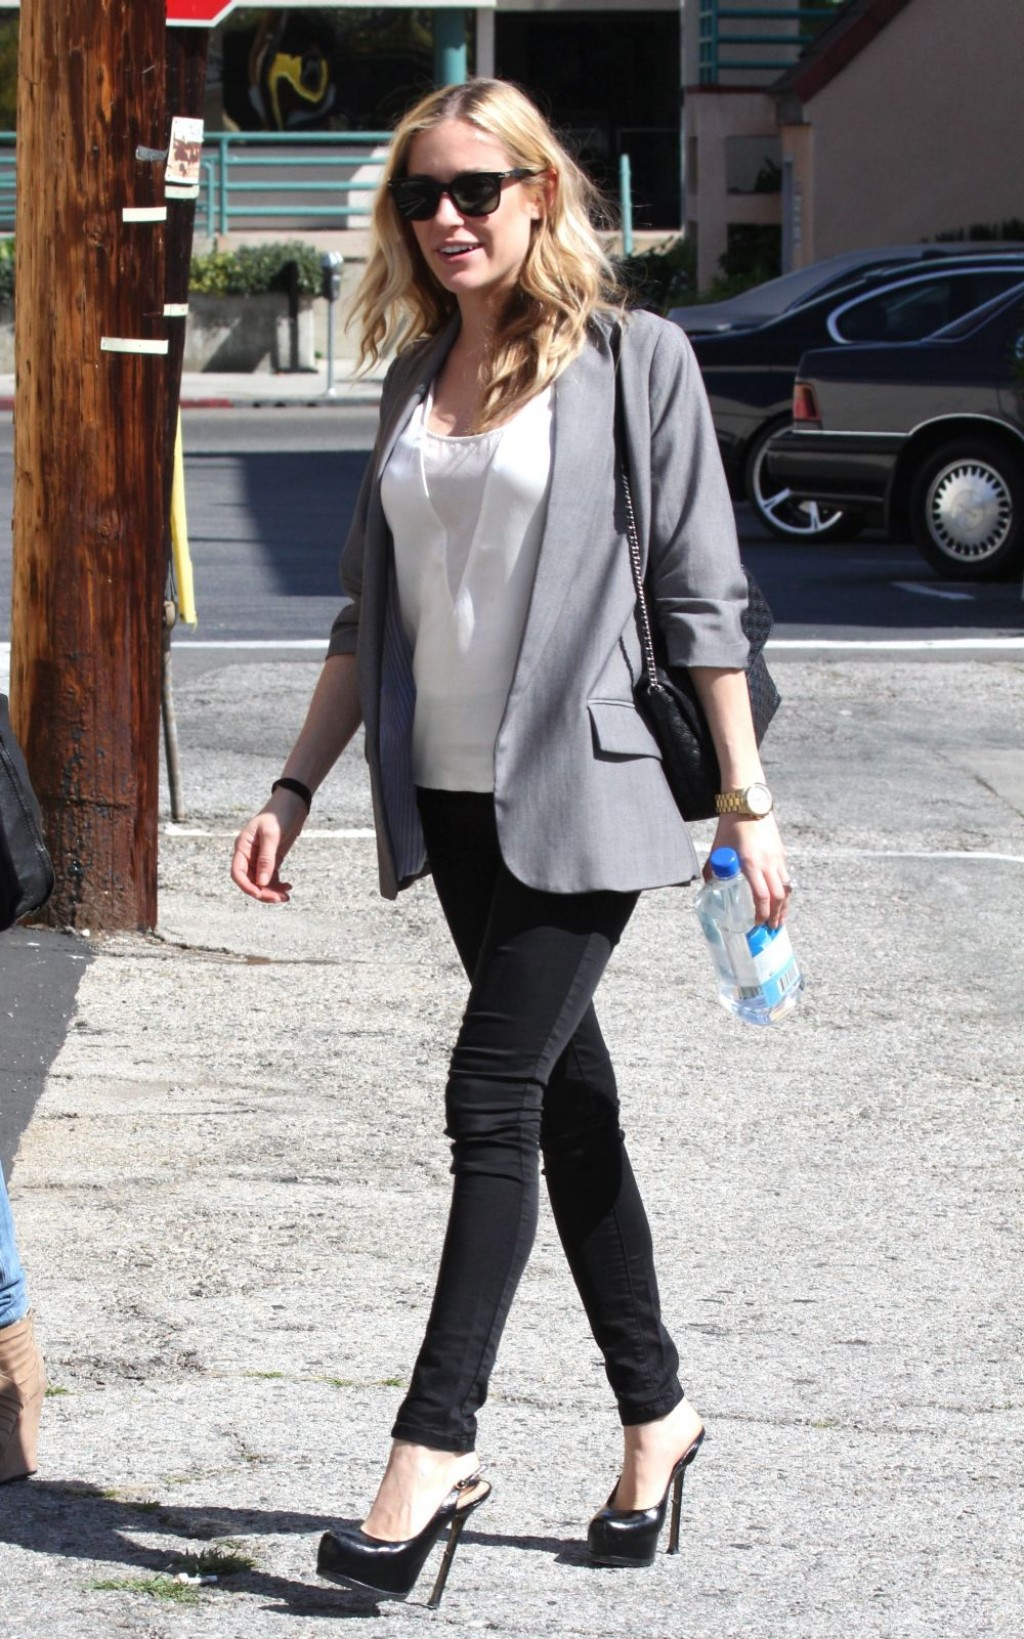 Celebrities in Skinny Jeans With High Heels